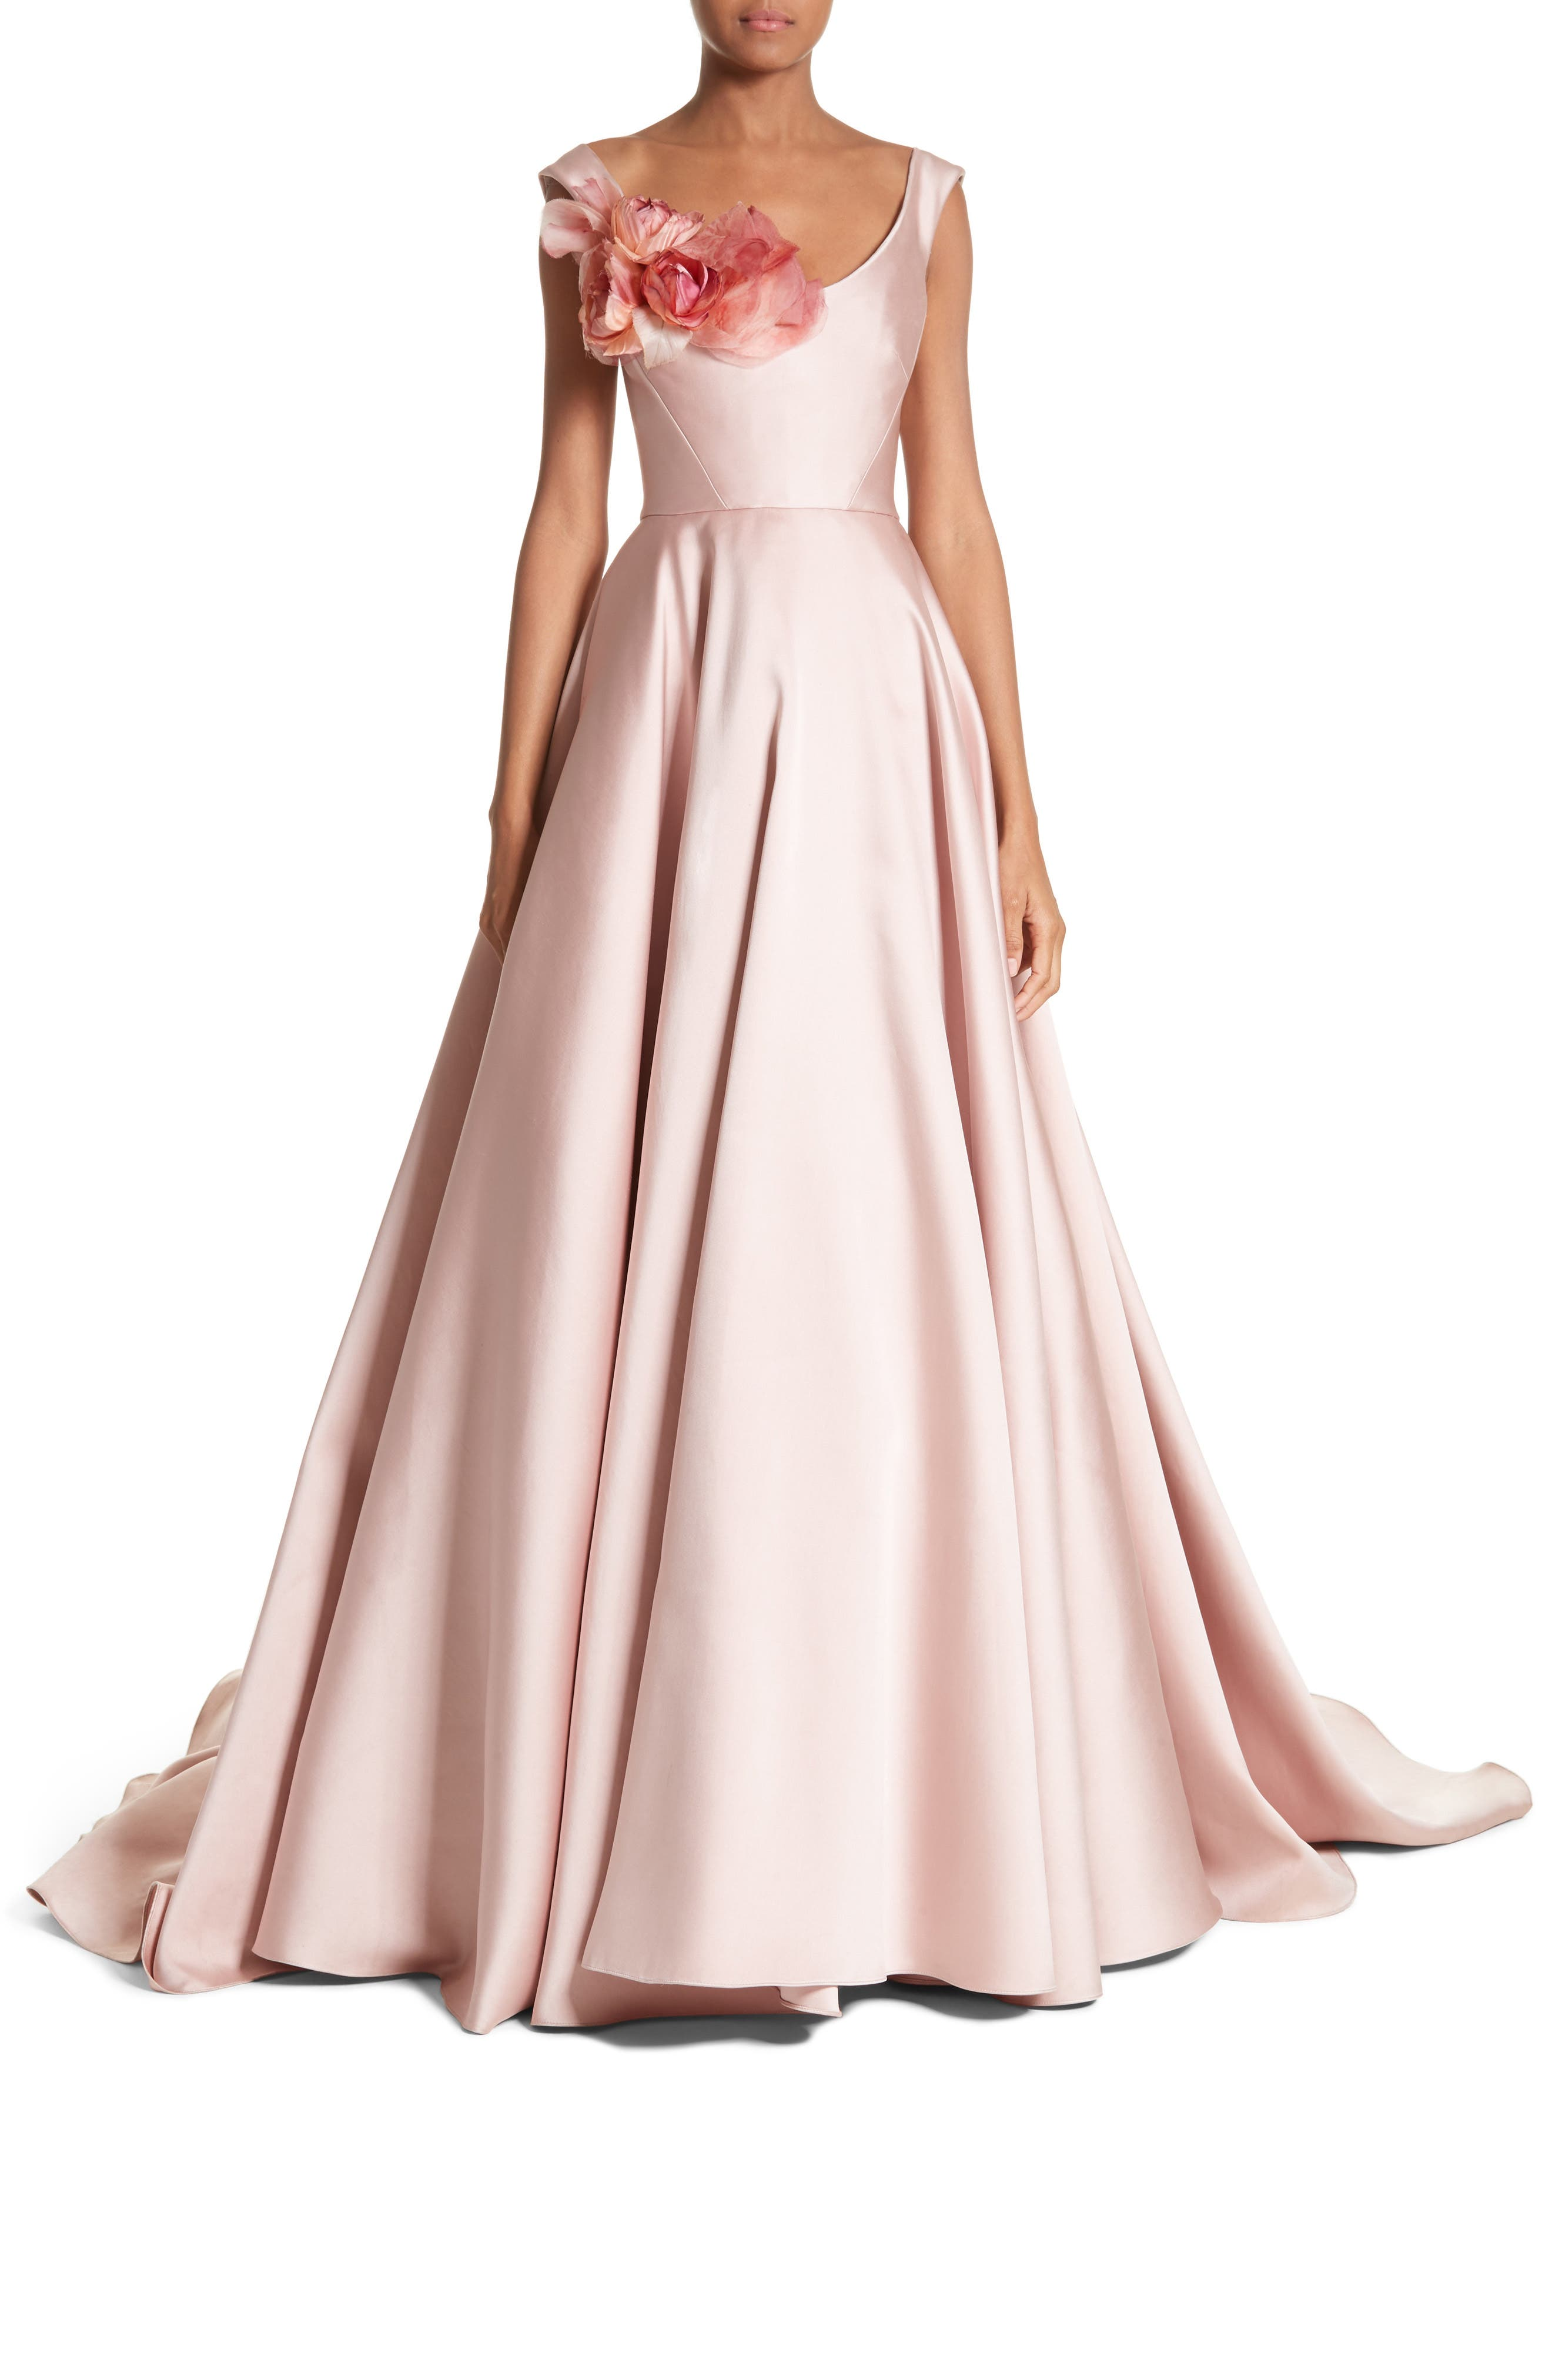 Corsage Off the Shoulder Satin Ballgown,                             Main thumbnail 1, color,                             680